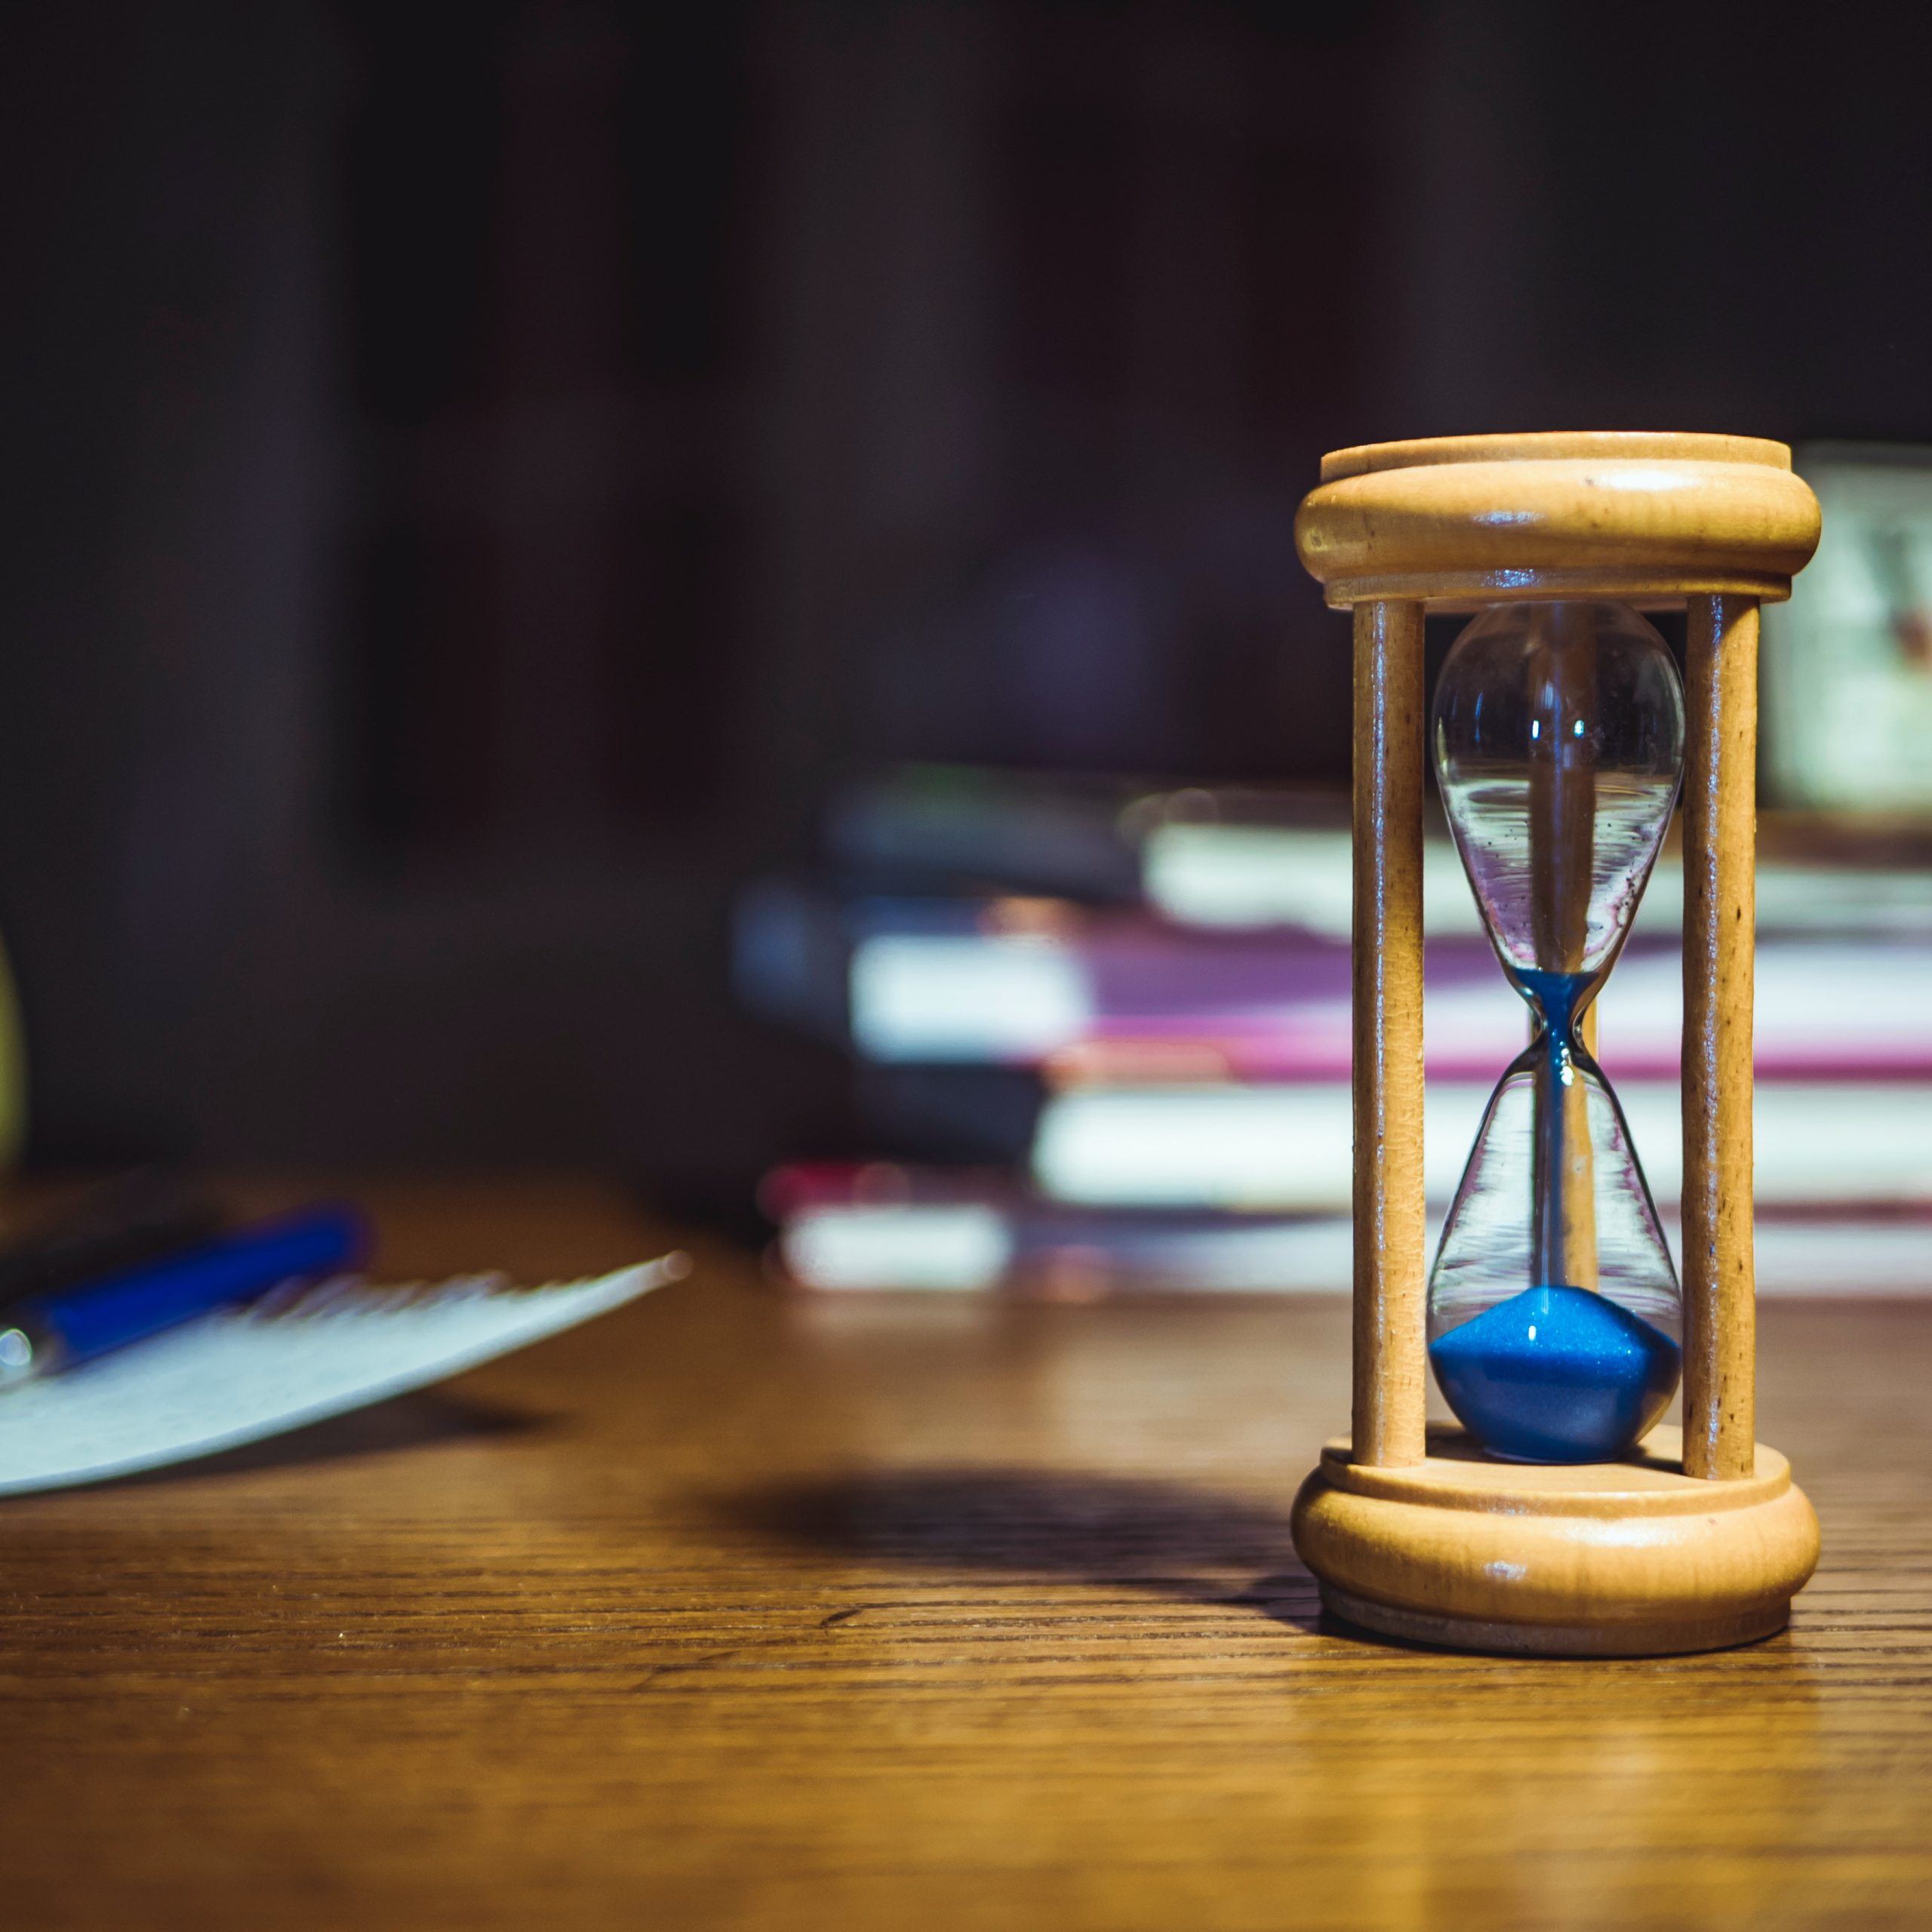 The bad business of wasting time